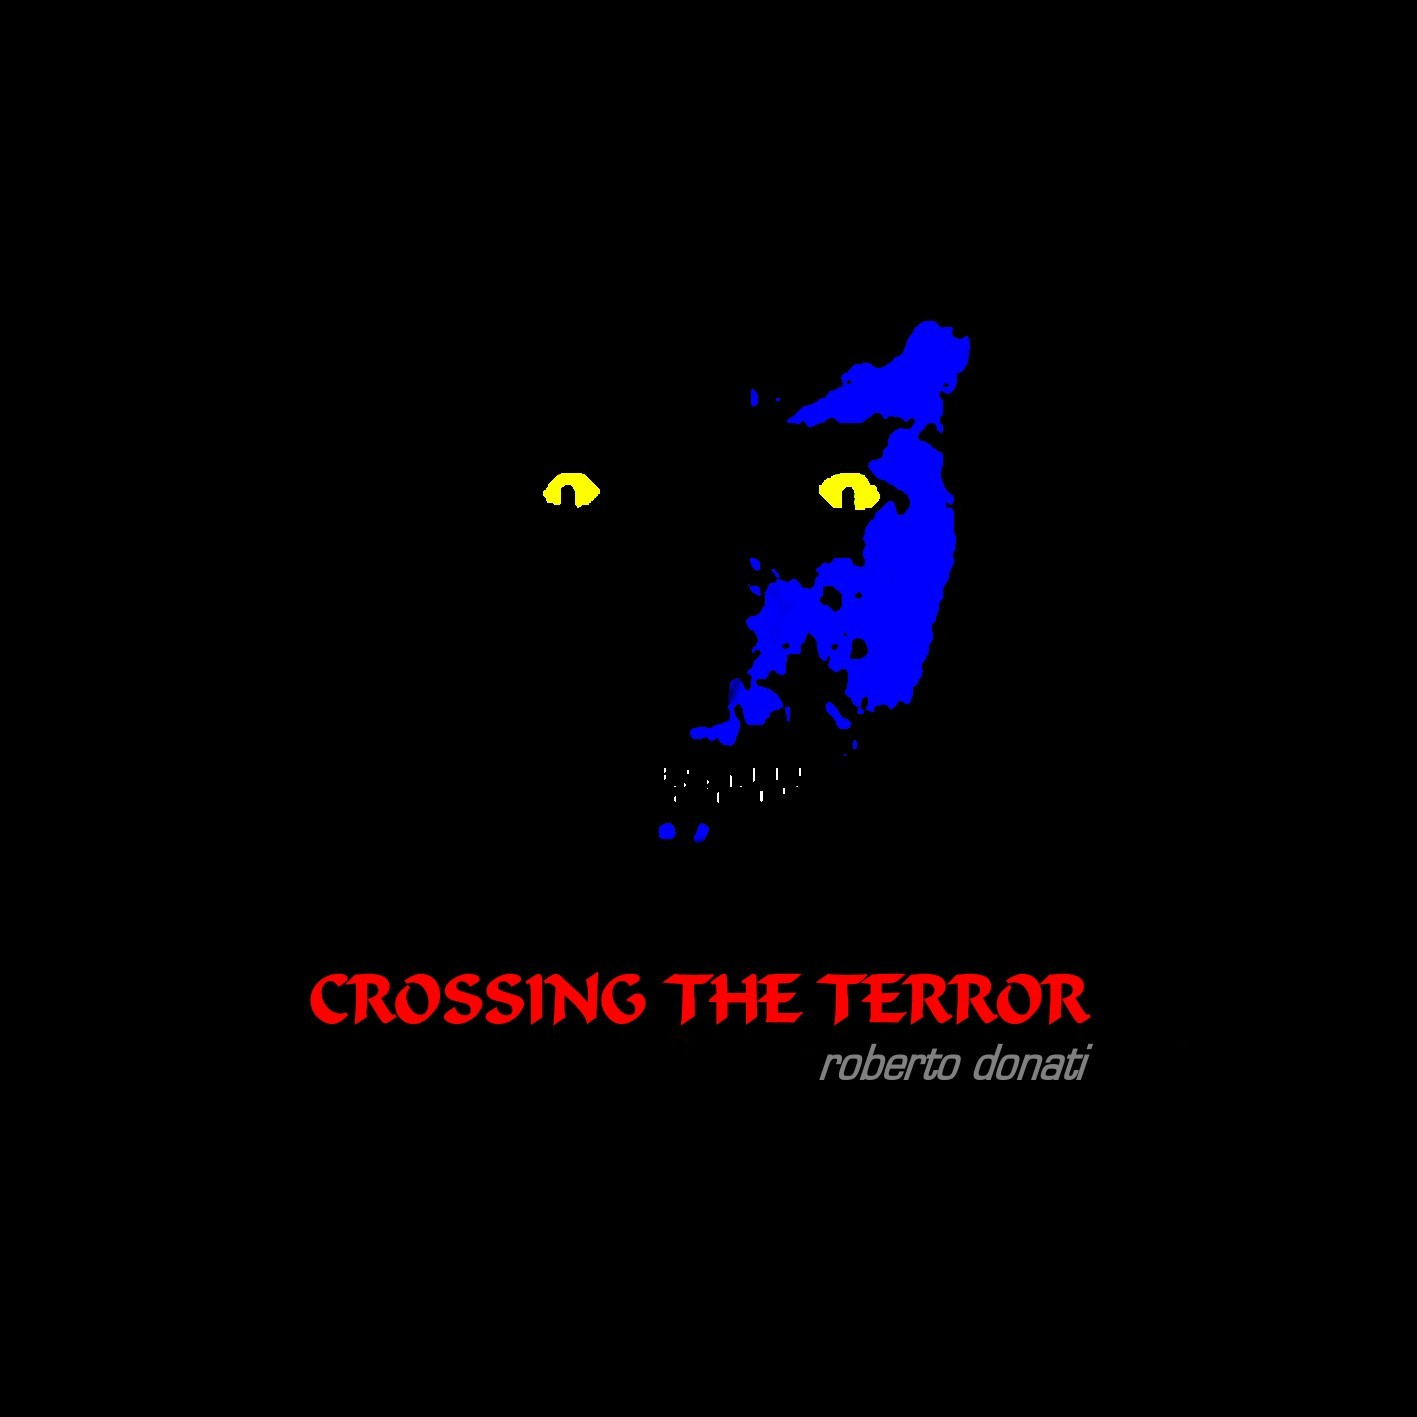 http://indiemusicpeople.com/uploads2/123344_9_26_2008_3_17_51_AM_-_Crossing_The_Terror_(cover).jpg